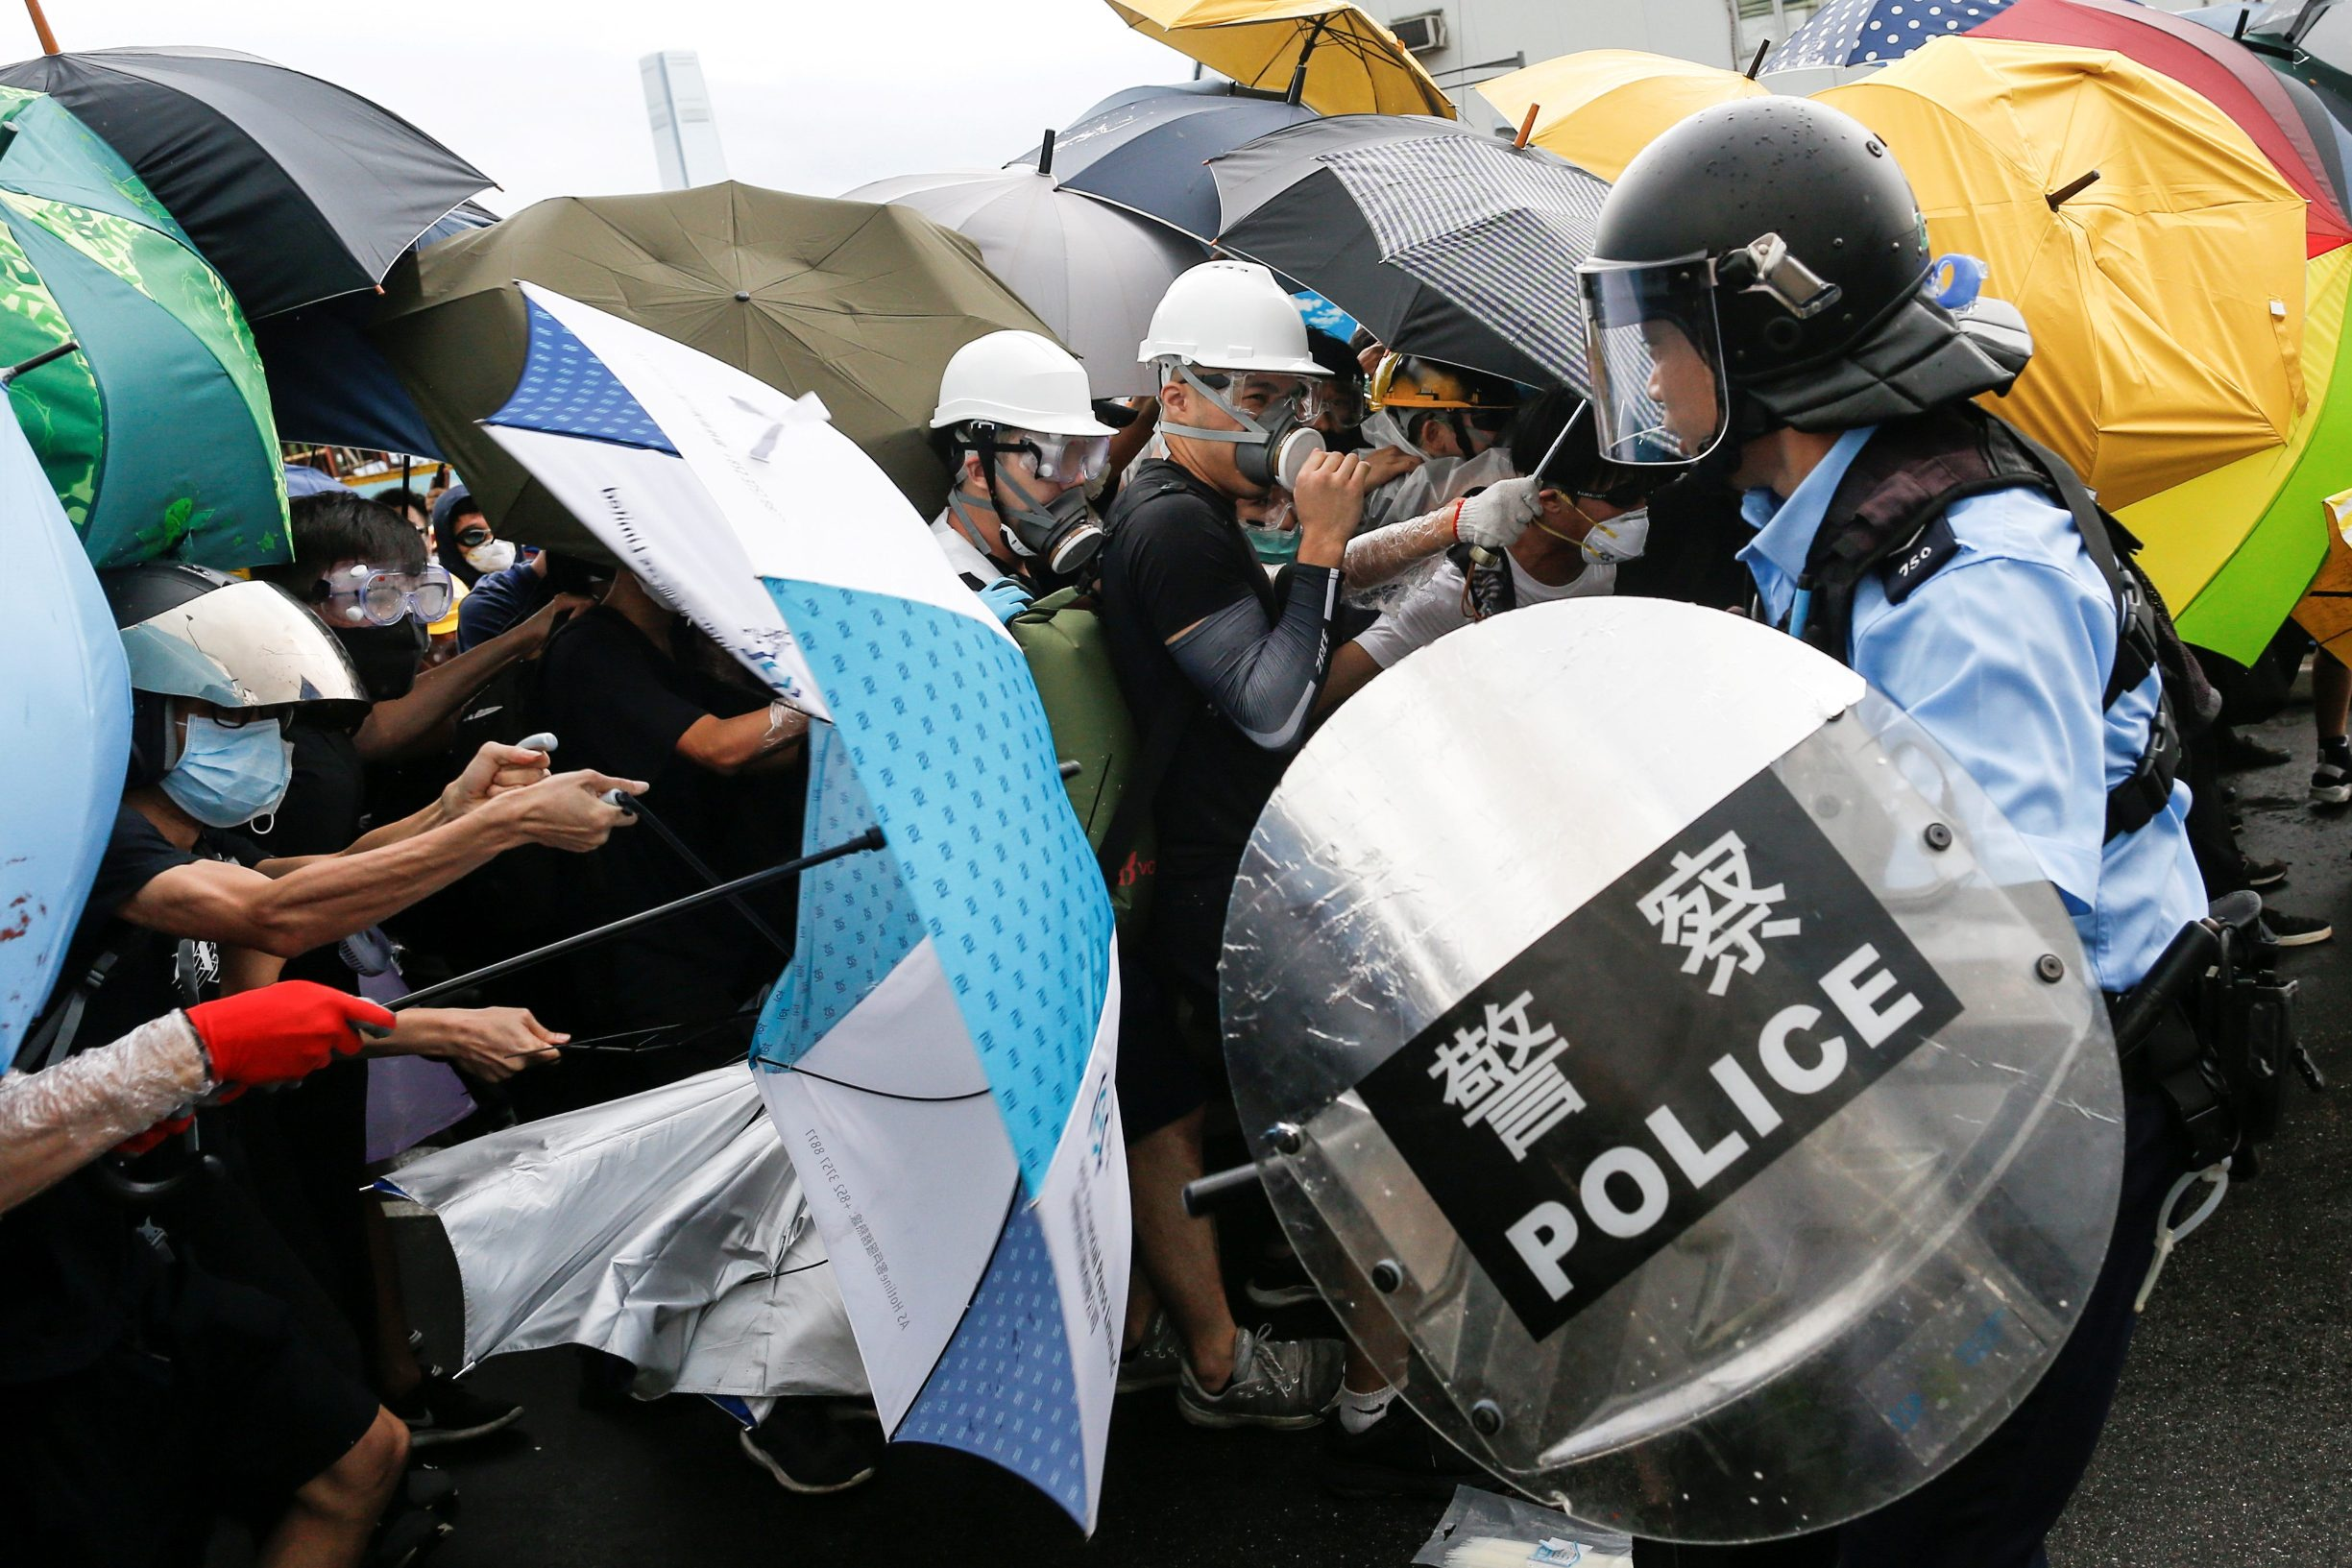 Police try to disperse protesters near a flag raising ceremony for the anniversary of Hong Kong handover to China in Hong Kong, China July 1, 2019.  REUTERS/Thomas Peter     TPX IMAGES OF THE DAY